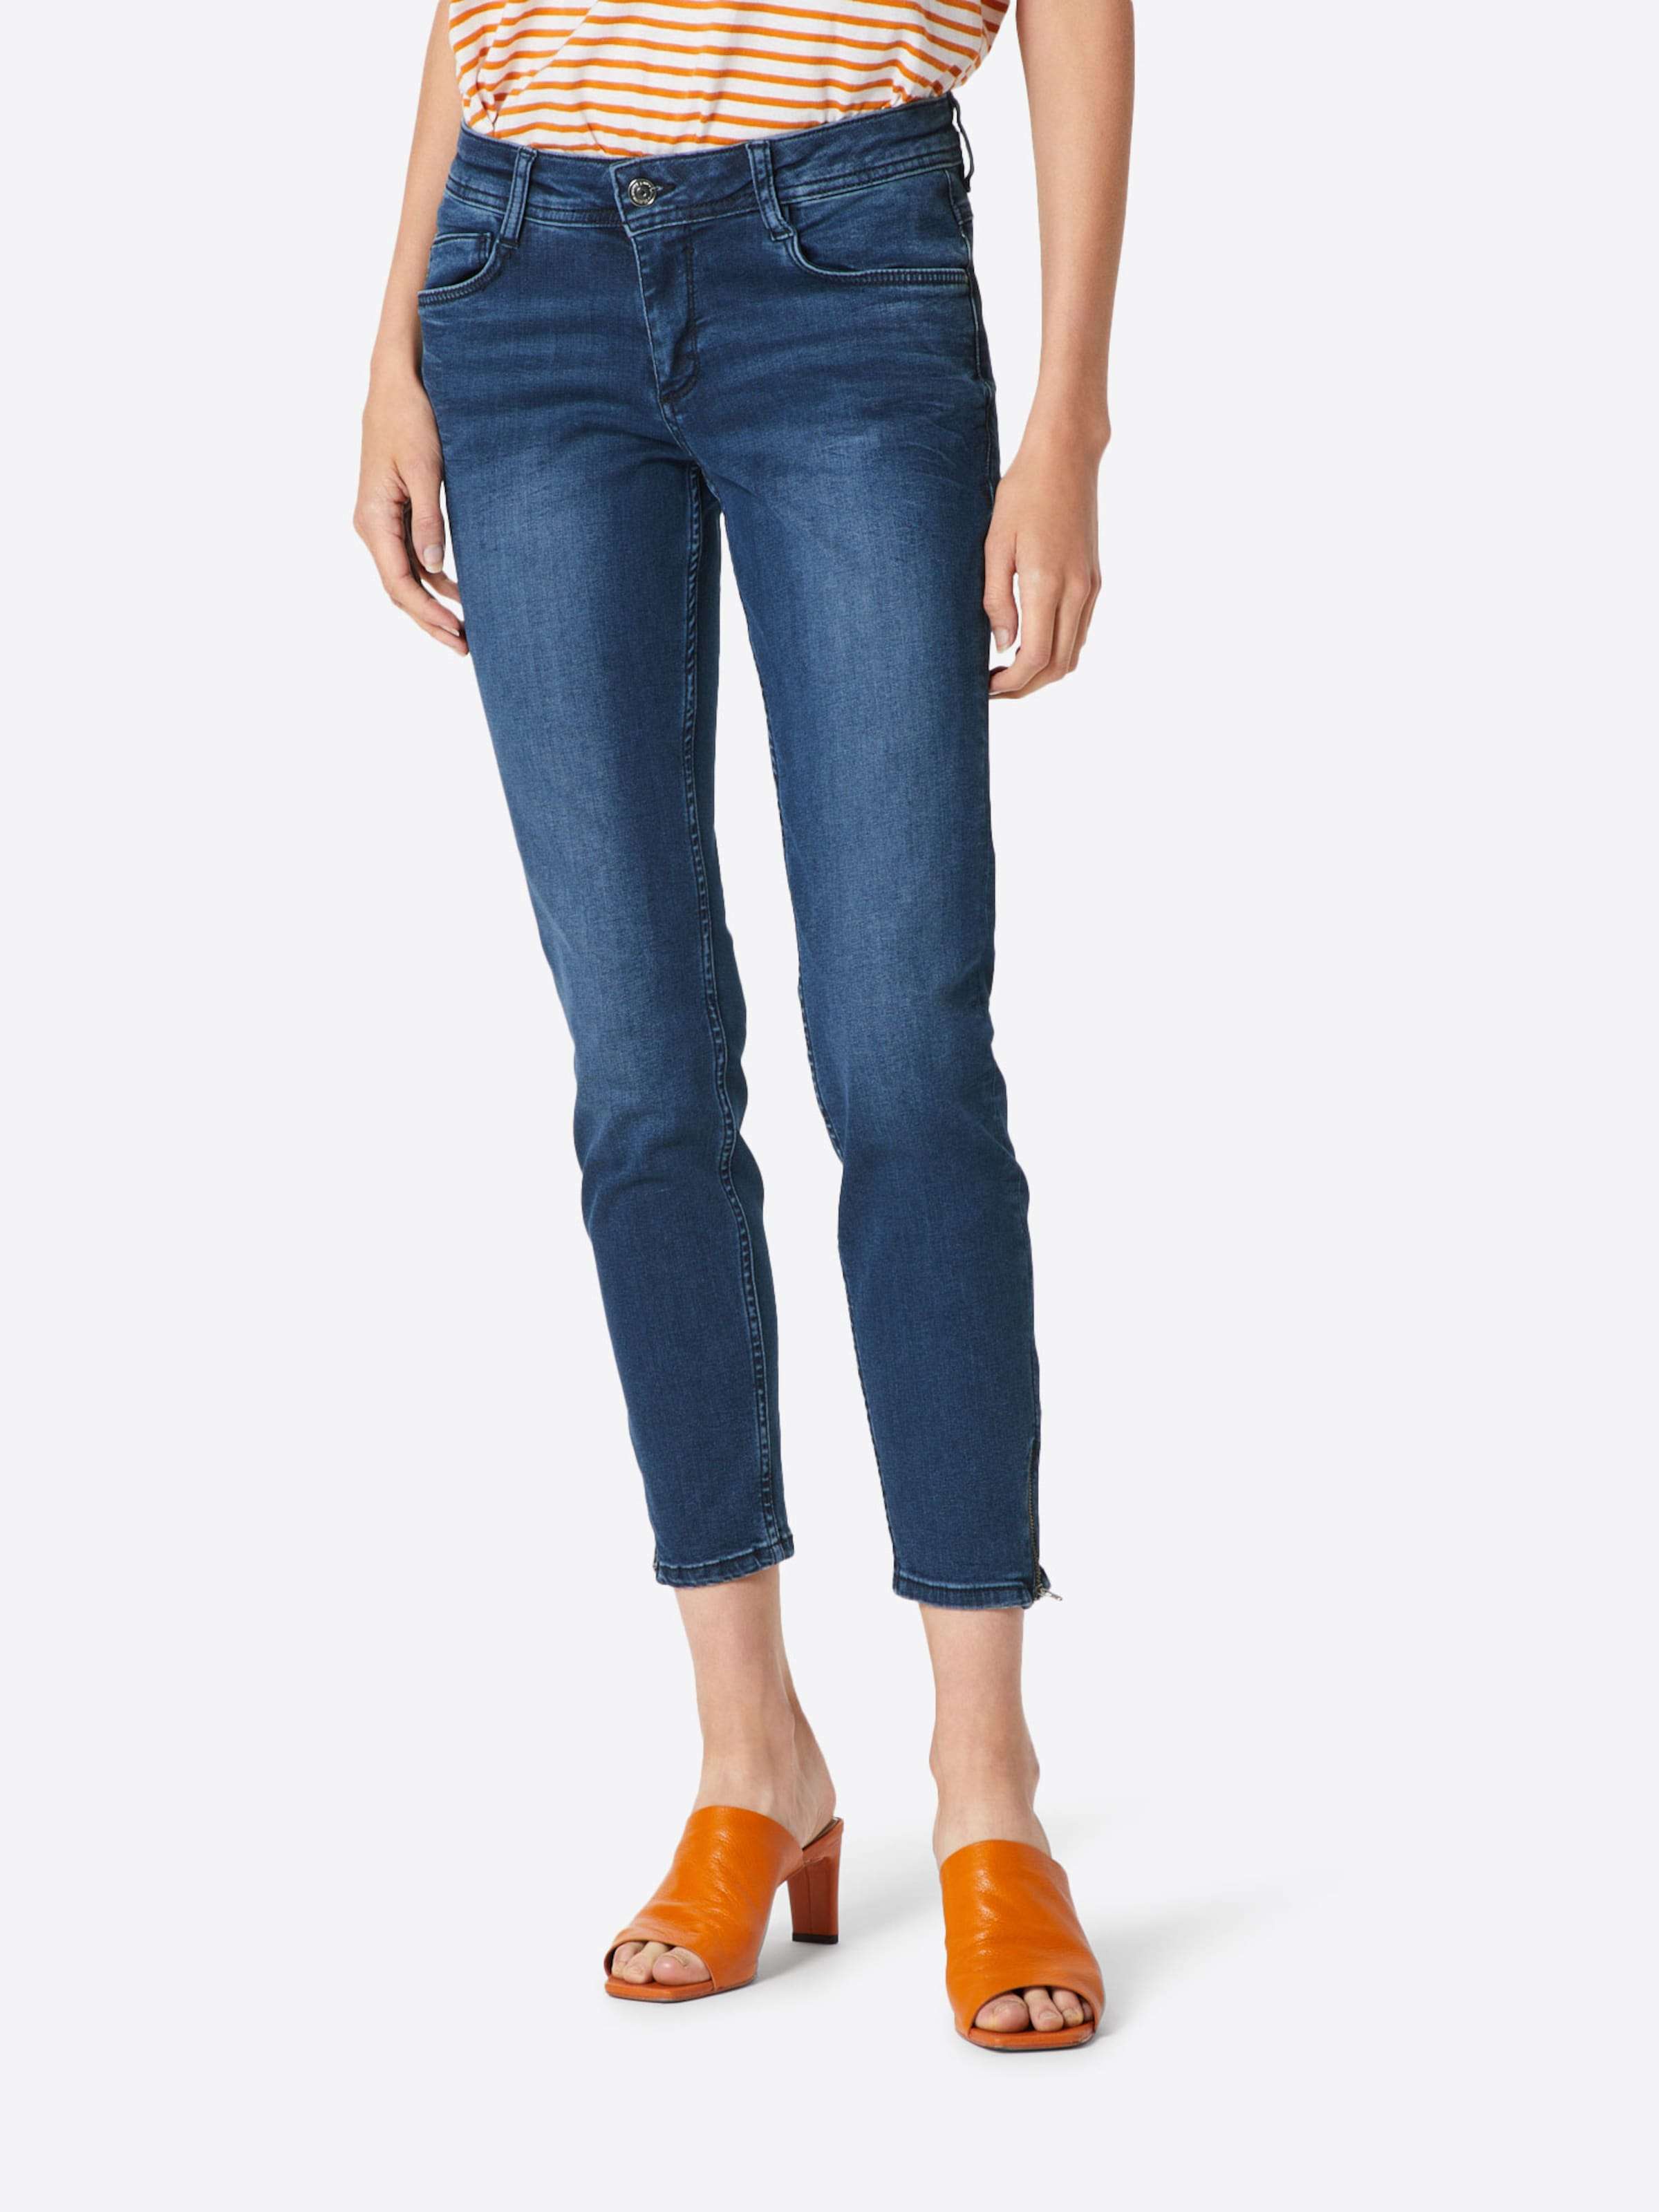 oliver Blue In S Denim Jeans YWE9HID2